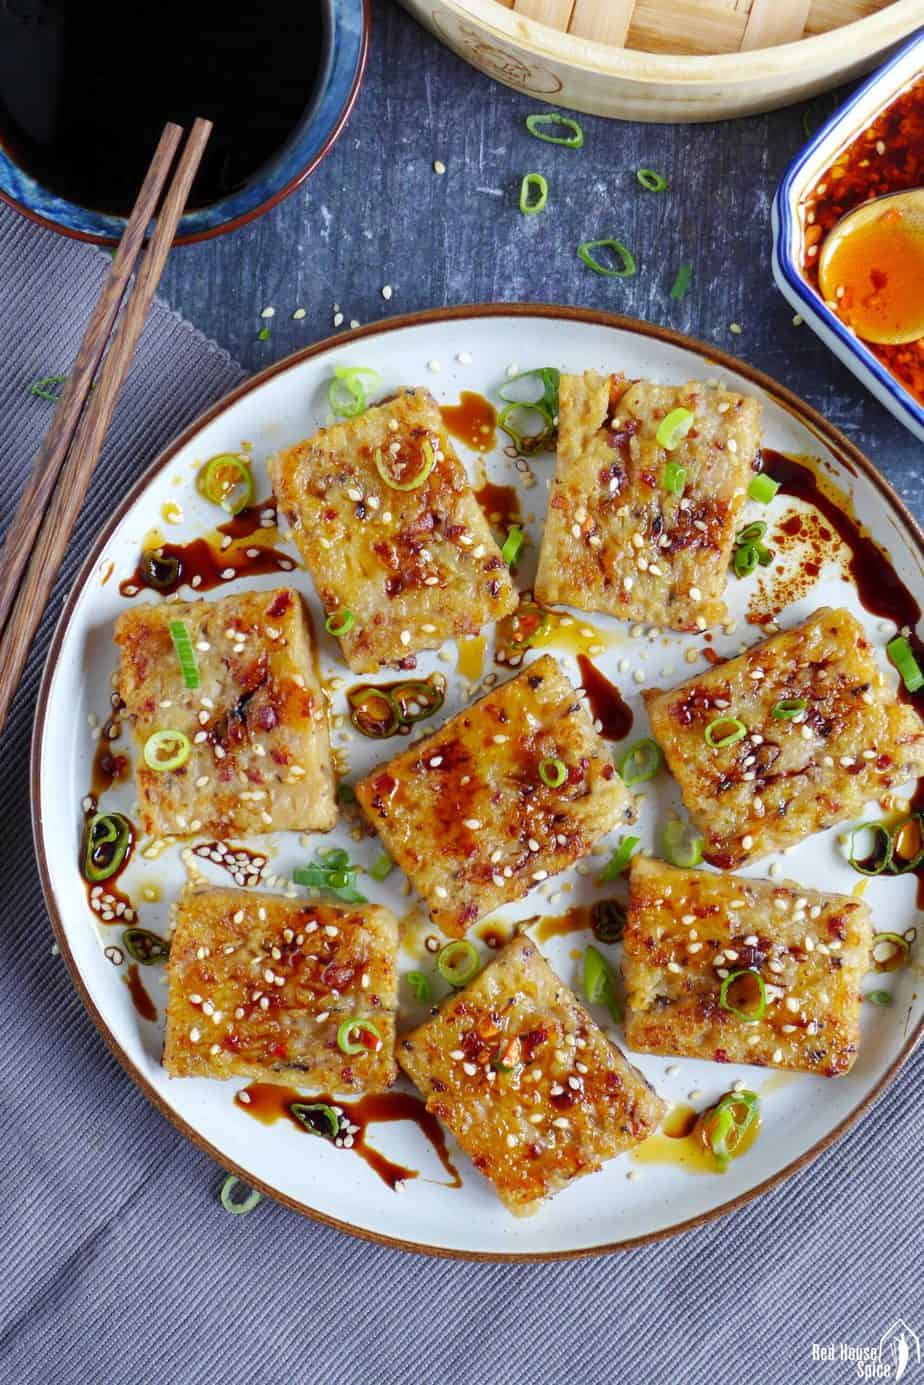 Pan-fried turnip cake with dressing in a plate